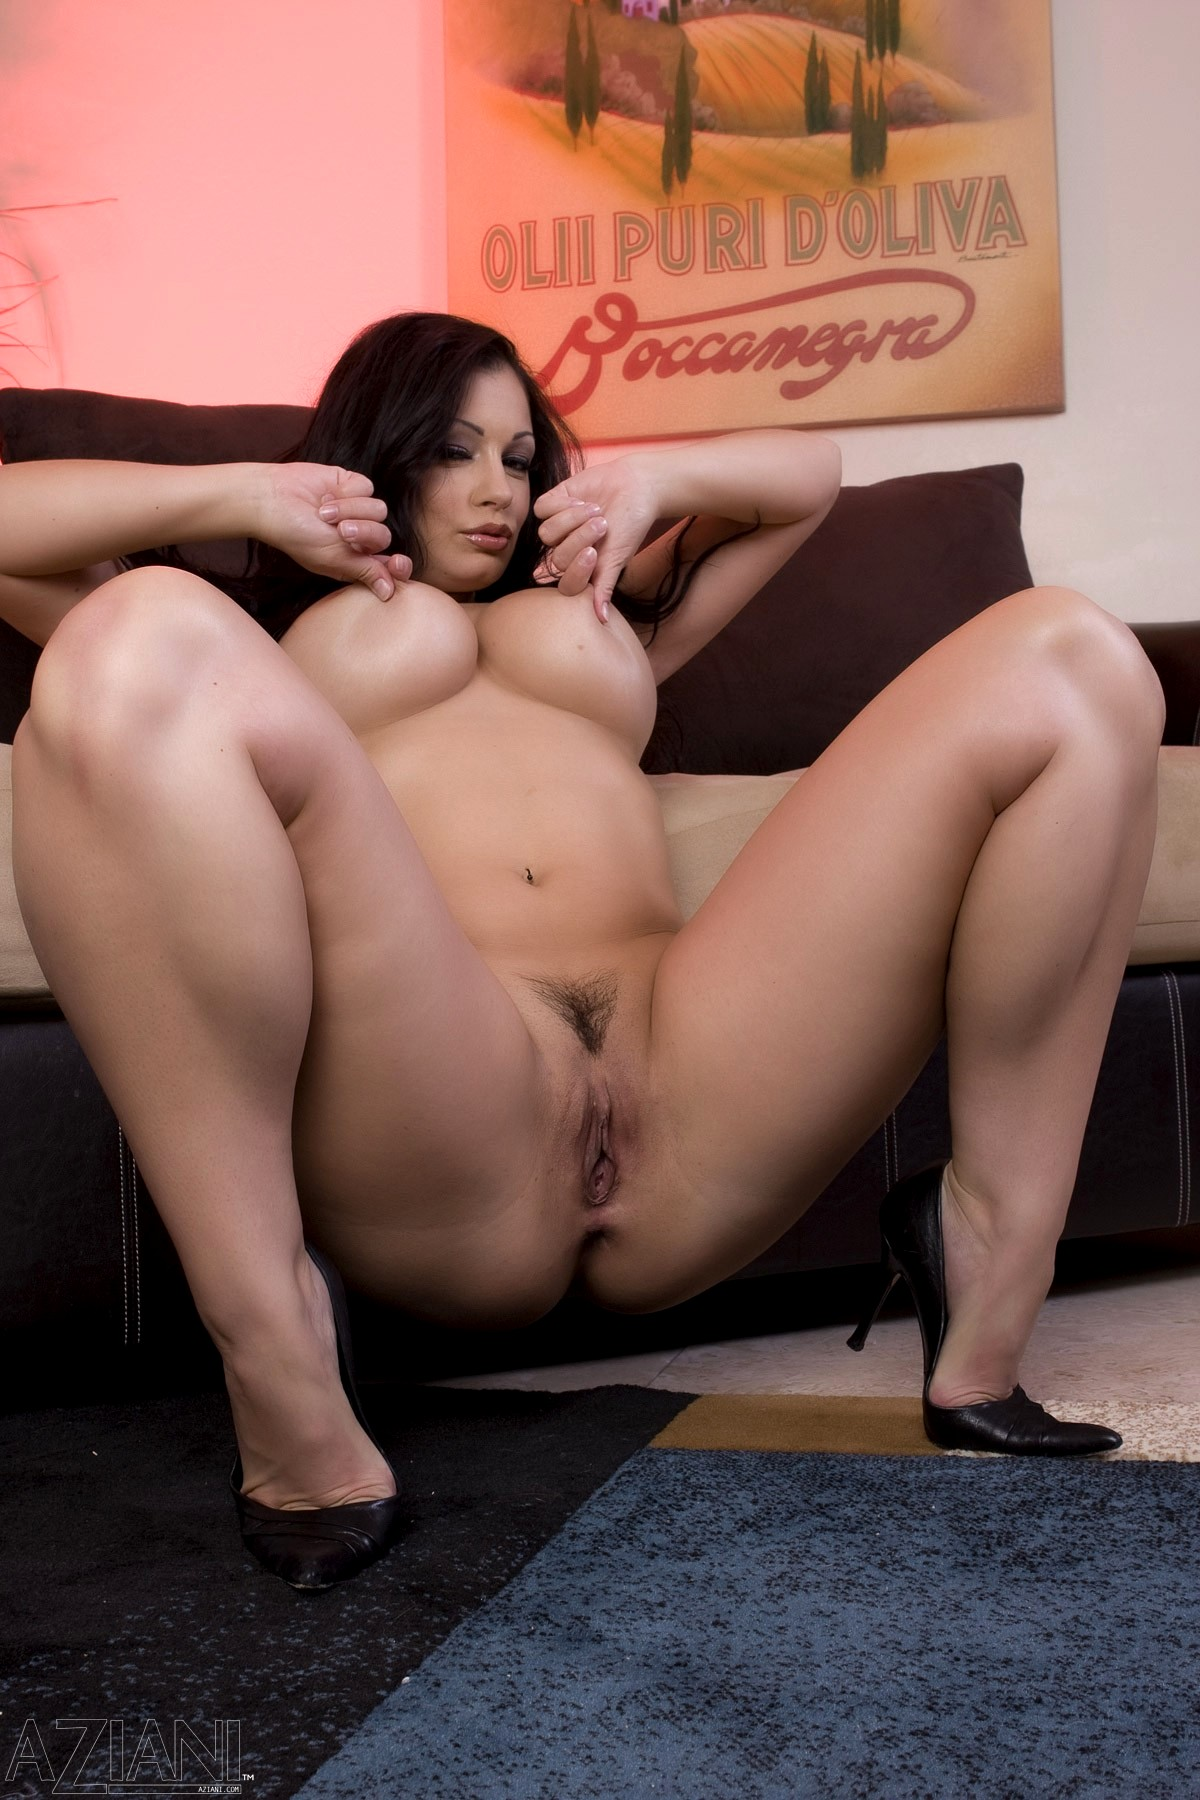 Free Curvy Brunette Mature Pictures Collection